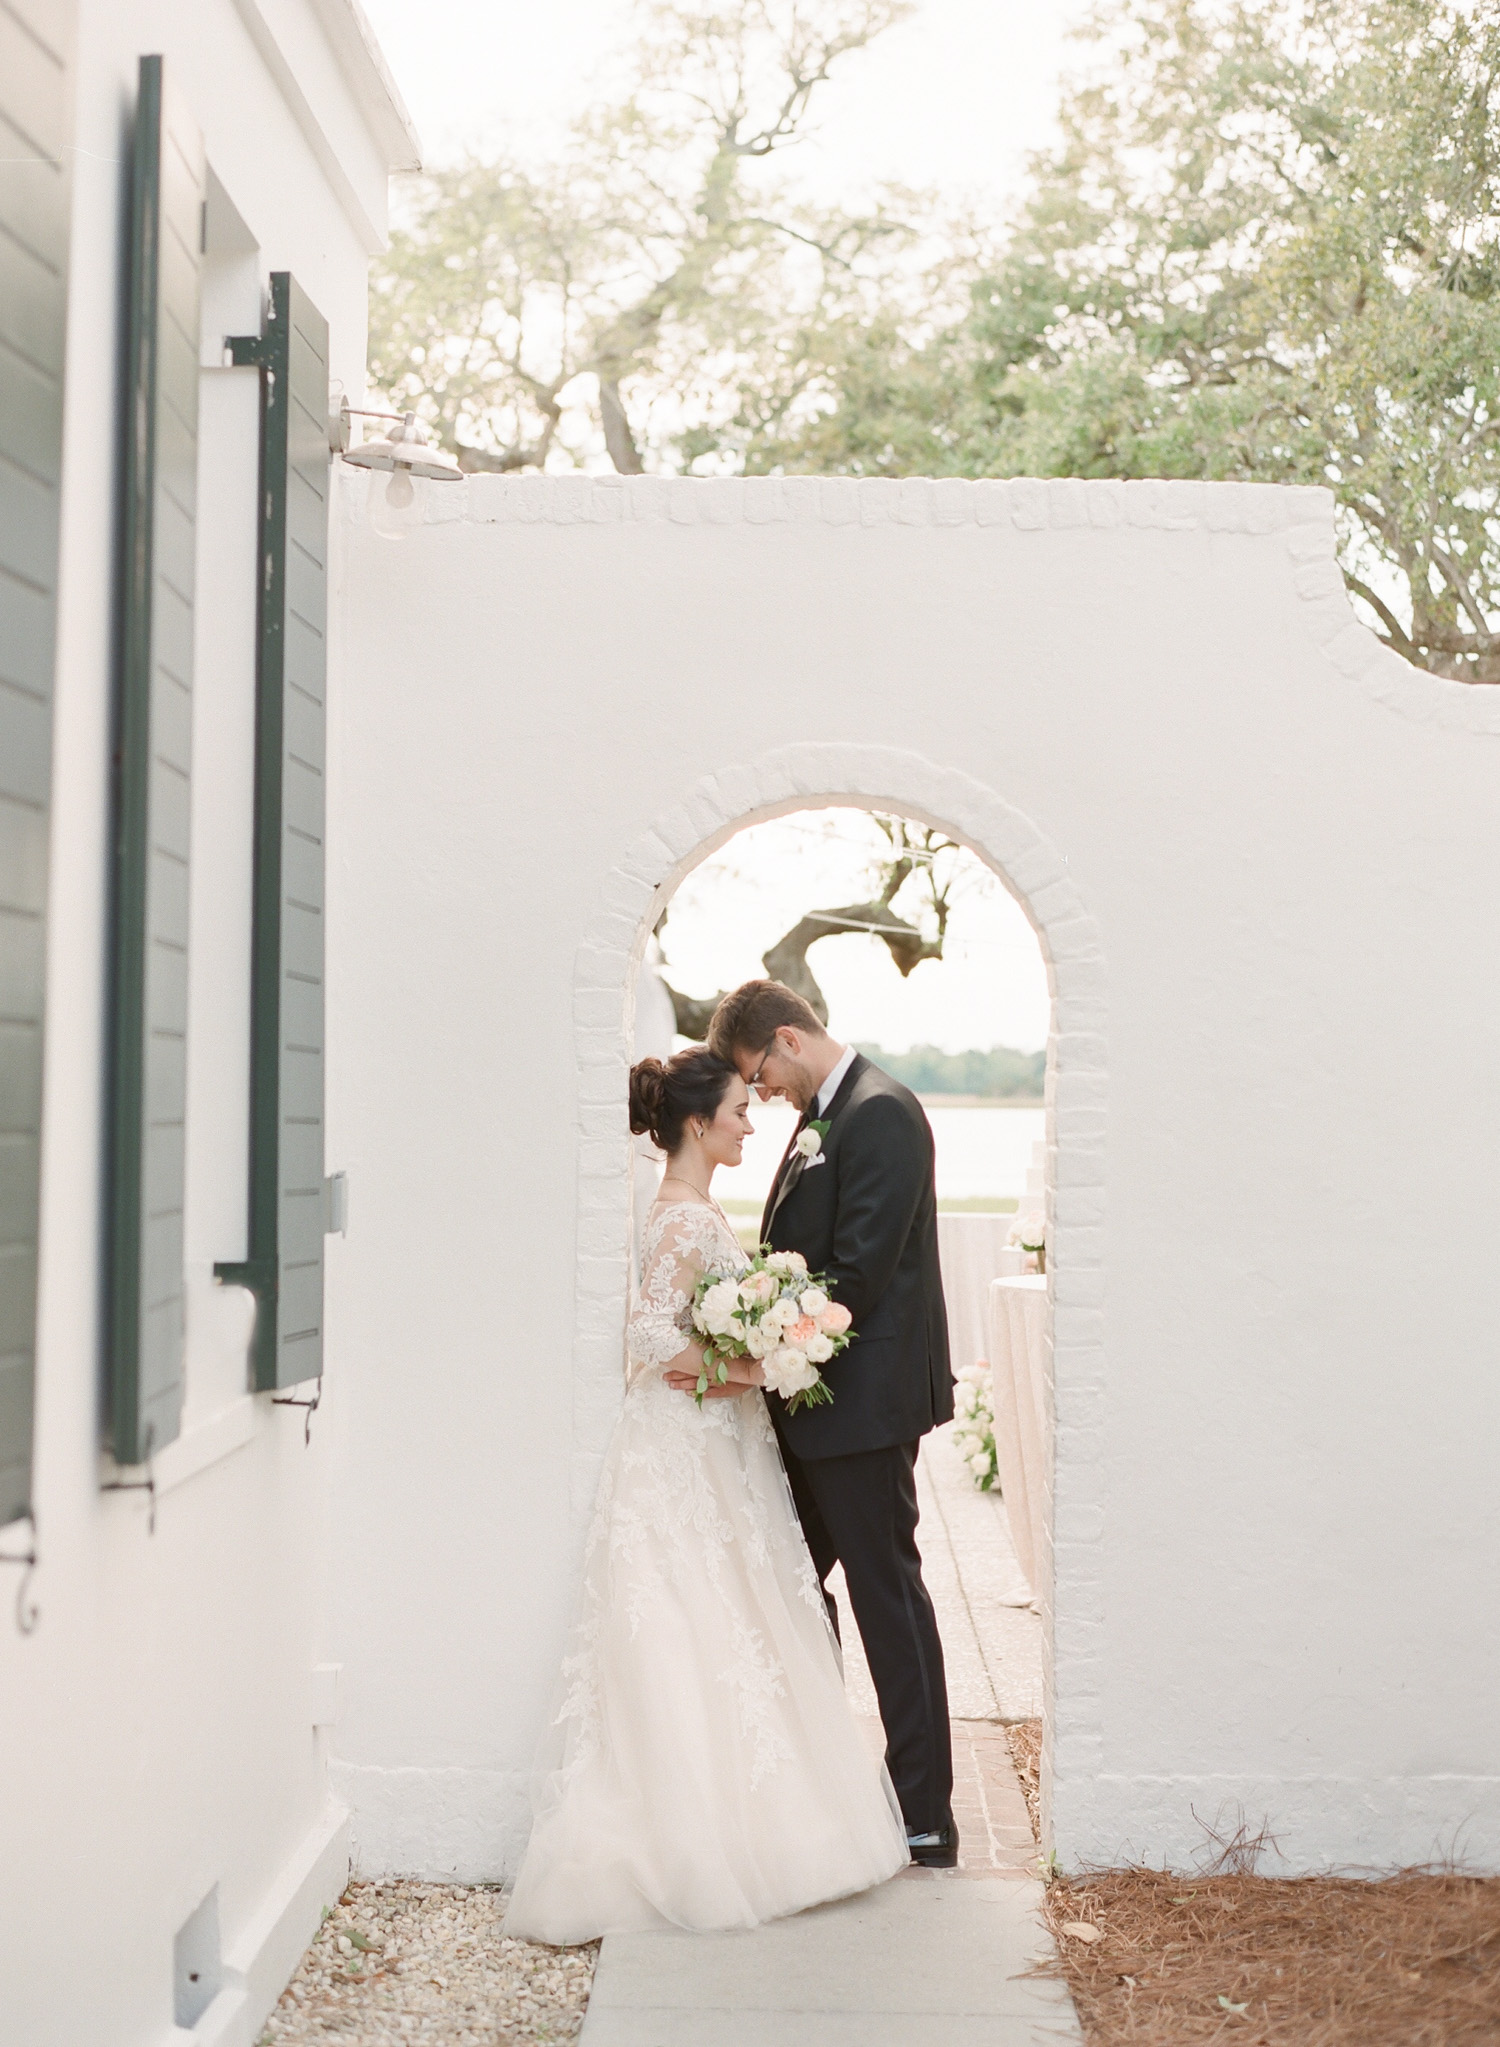 Charleston-Lowndes-Grove-Wedding-PPHG-86.jpg